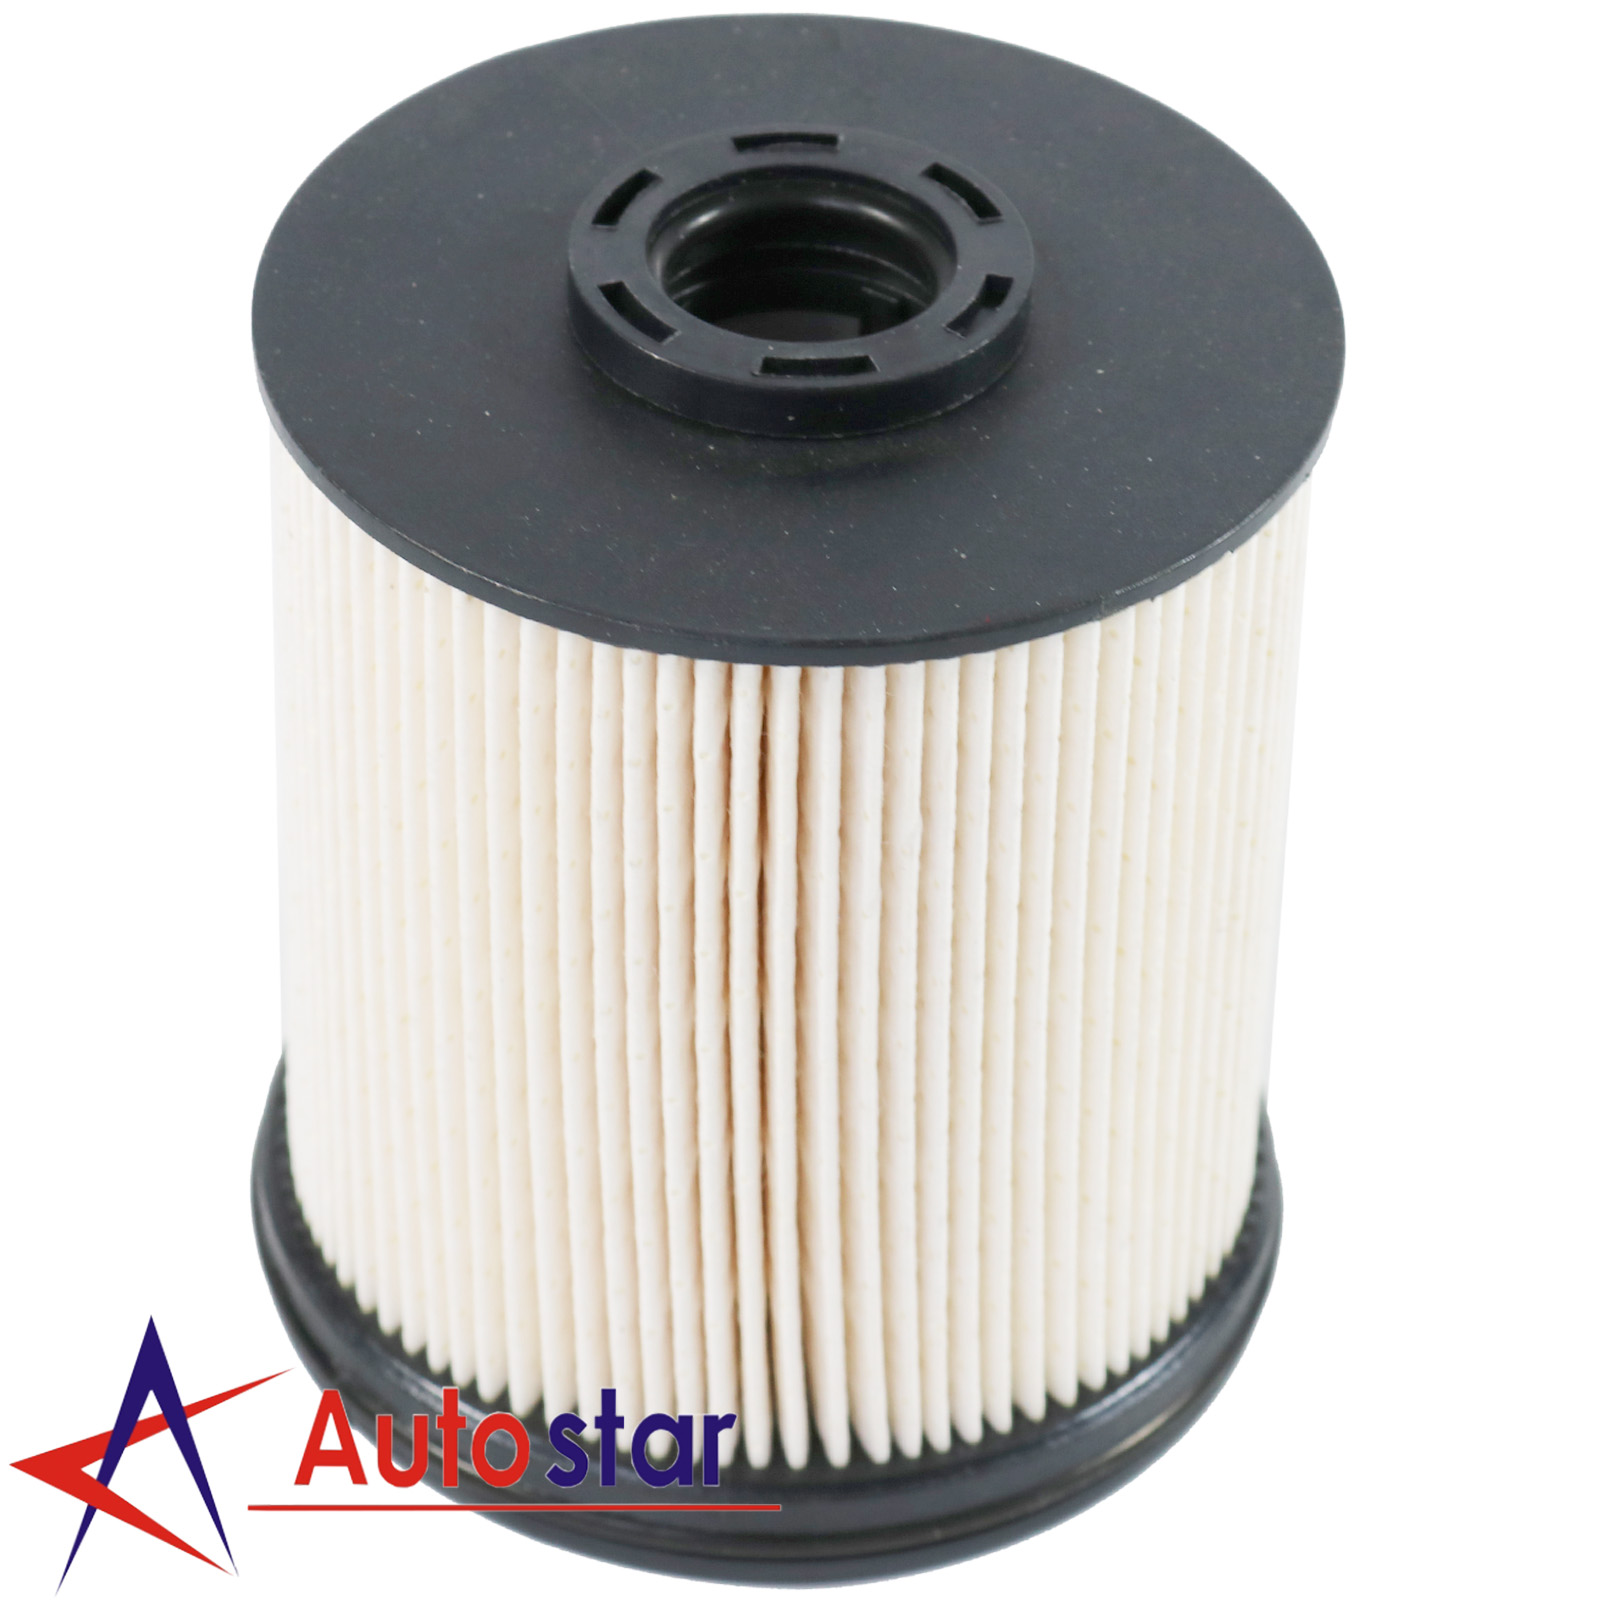 Oil Filter Tp1003 Amp Fuel Filter P1015 For 2014 2015 Chevy